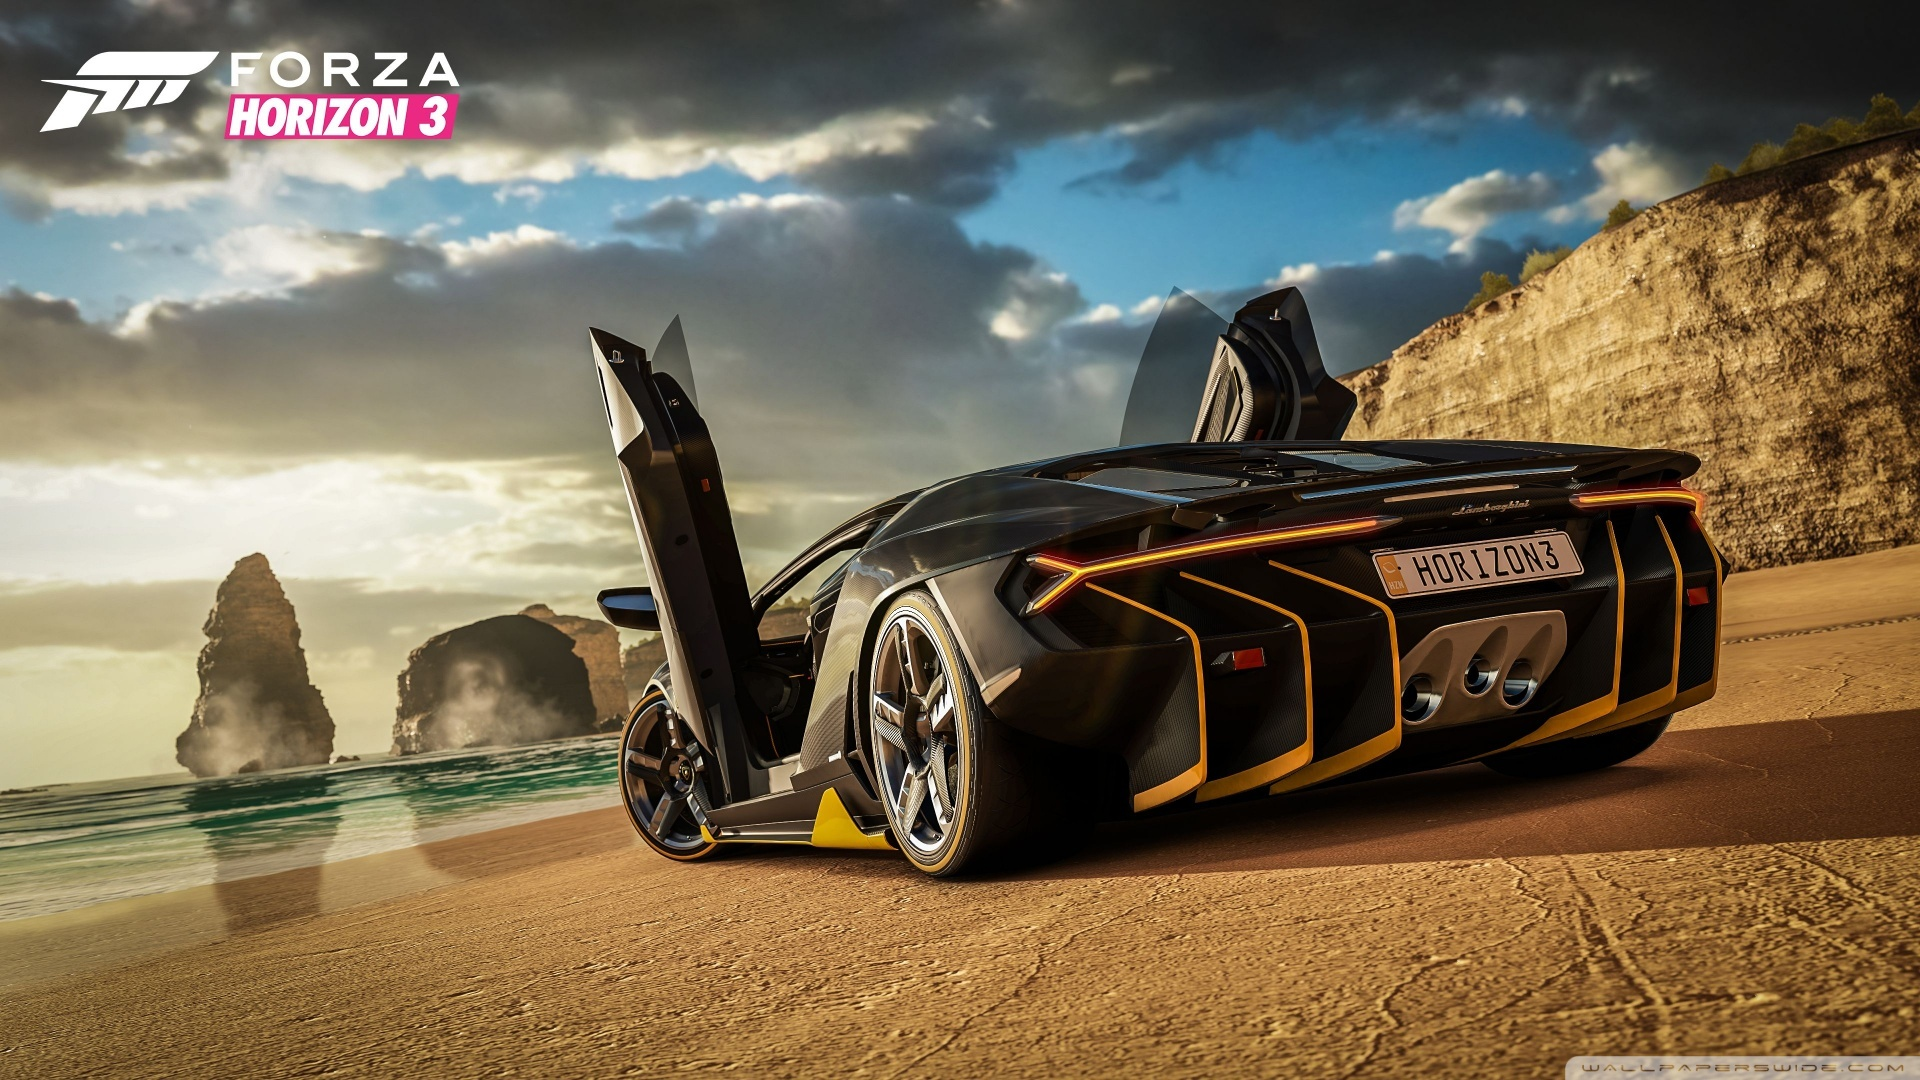 forza_horizon_6-wallpaper-1920x1080